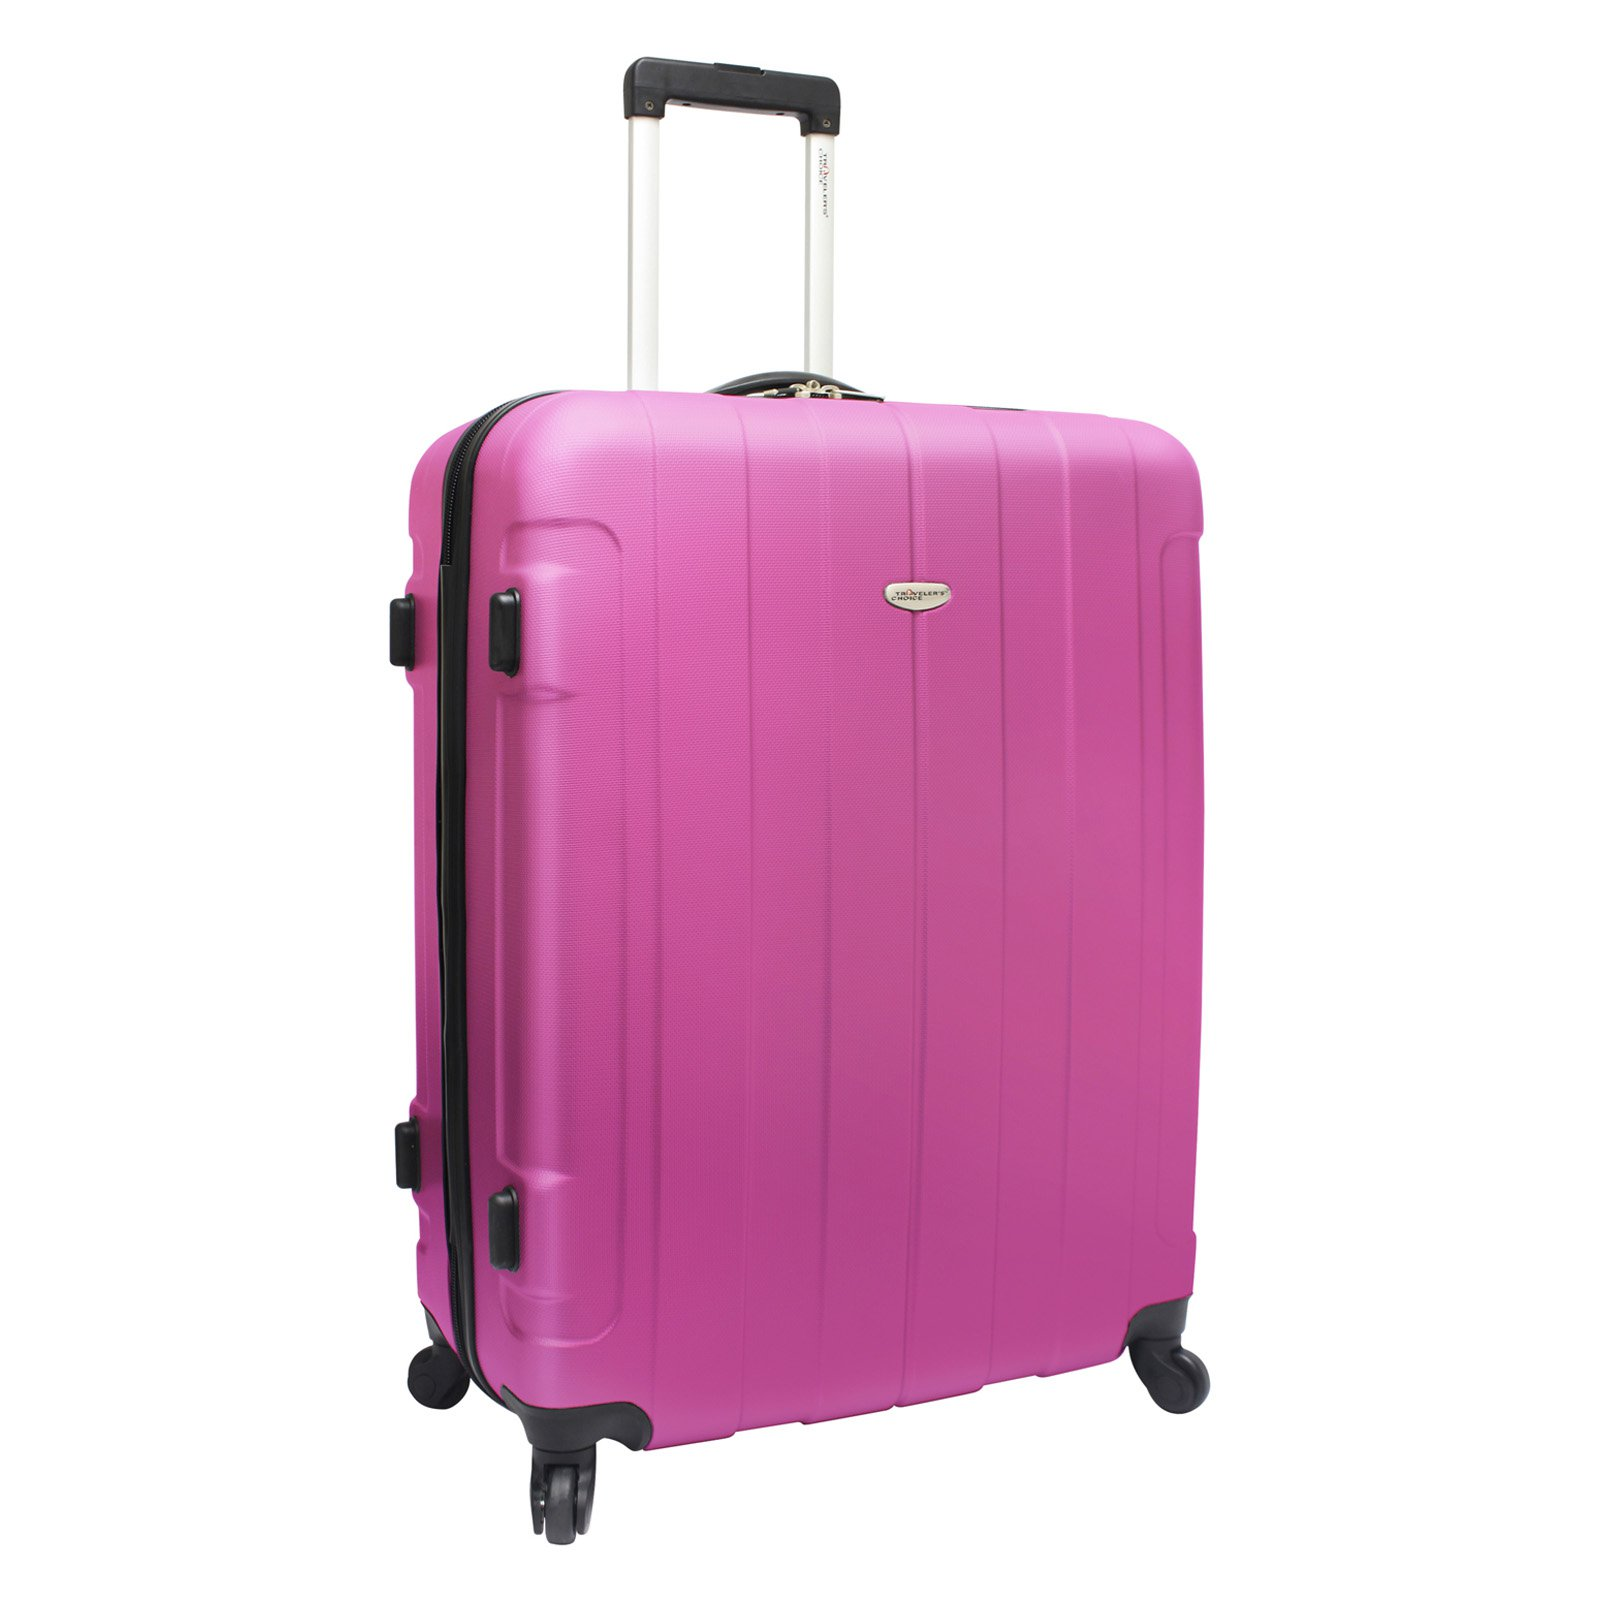 Travelers Choice Rome 28 in. Hardshell Upright Spinner Luggage with Free TSA Lock